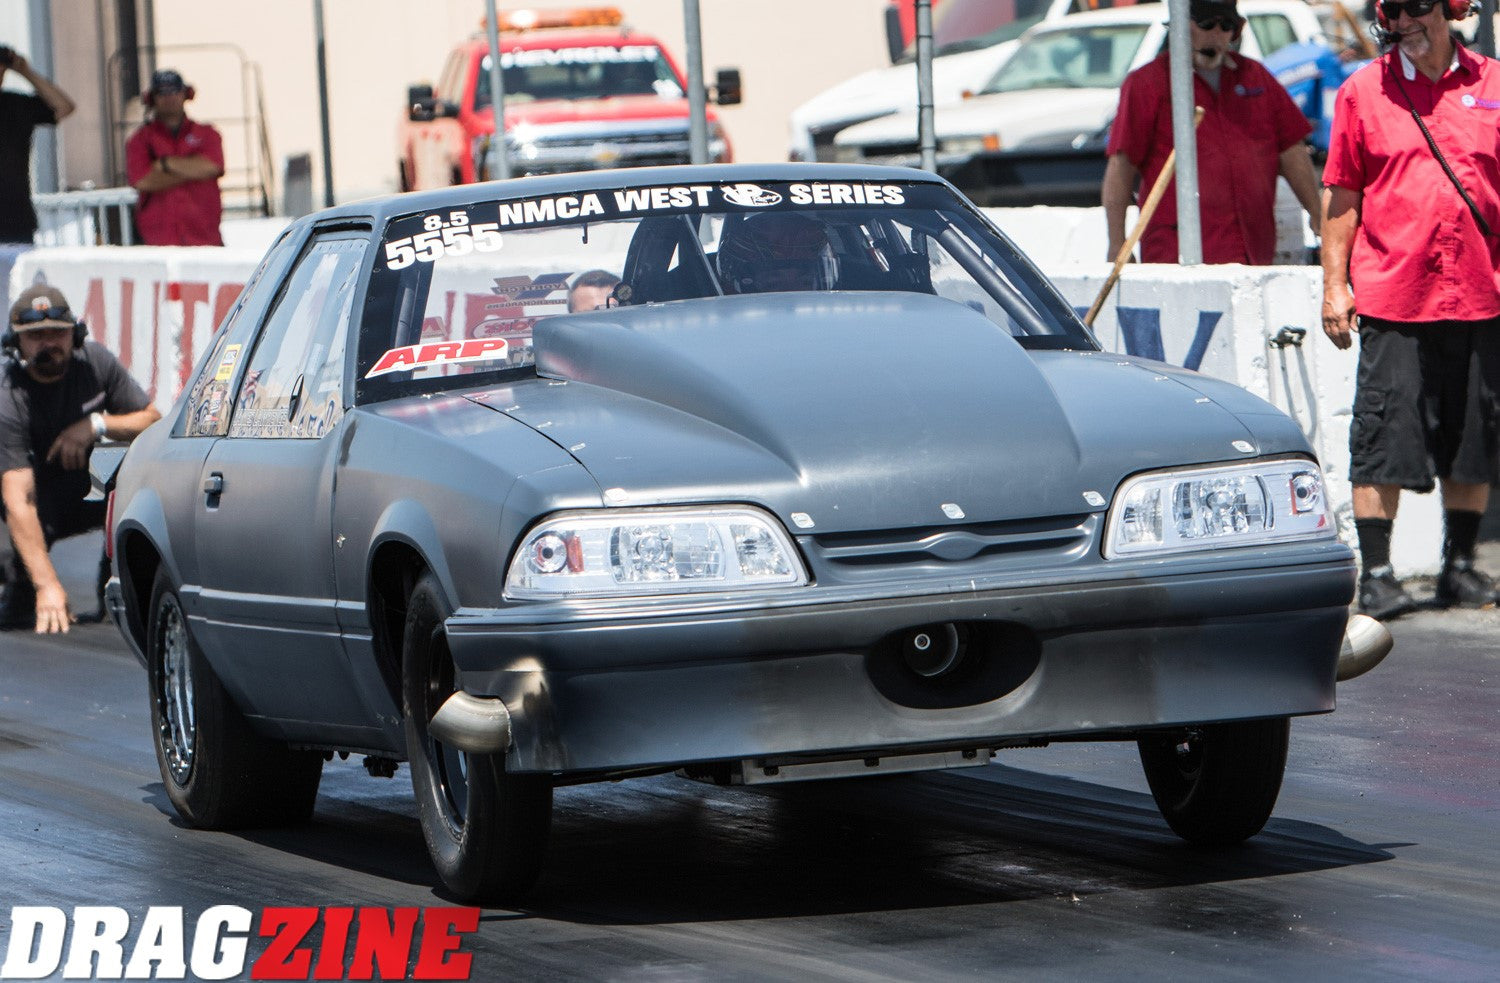 The Dragzine Evil 8 5 Debuts, Qualifies 3rd In Outlaw 8 5